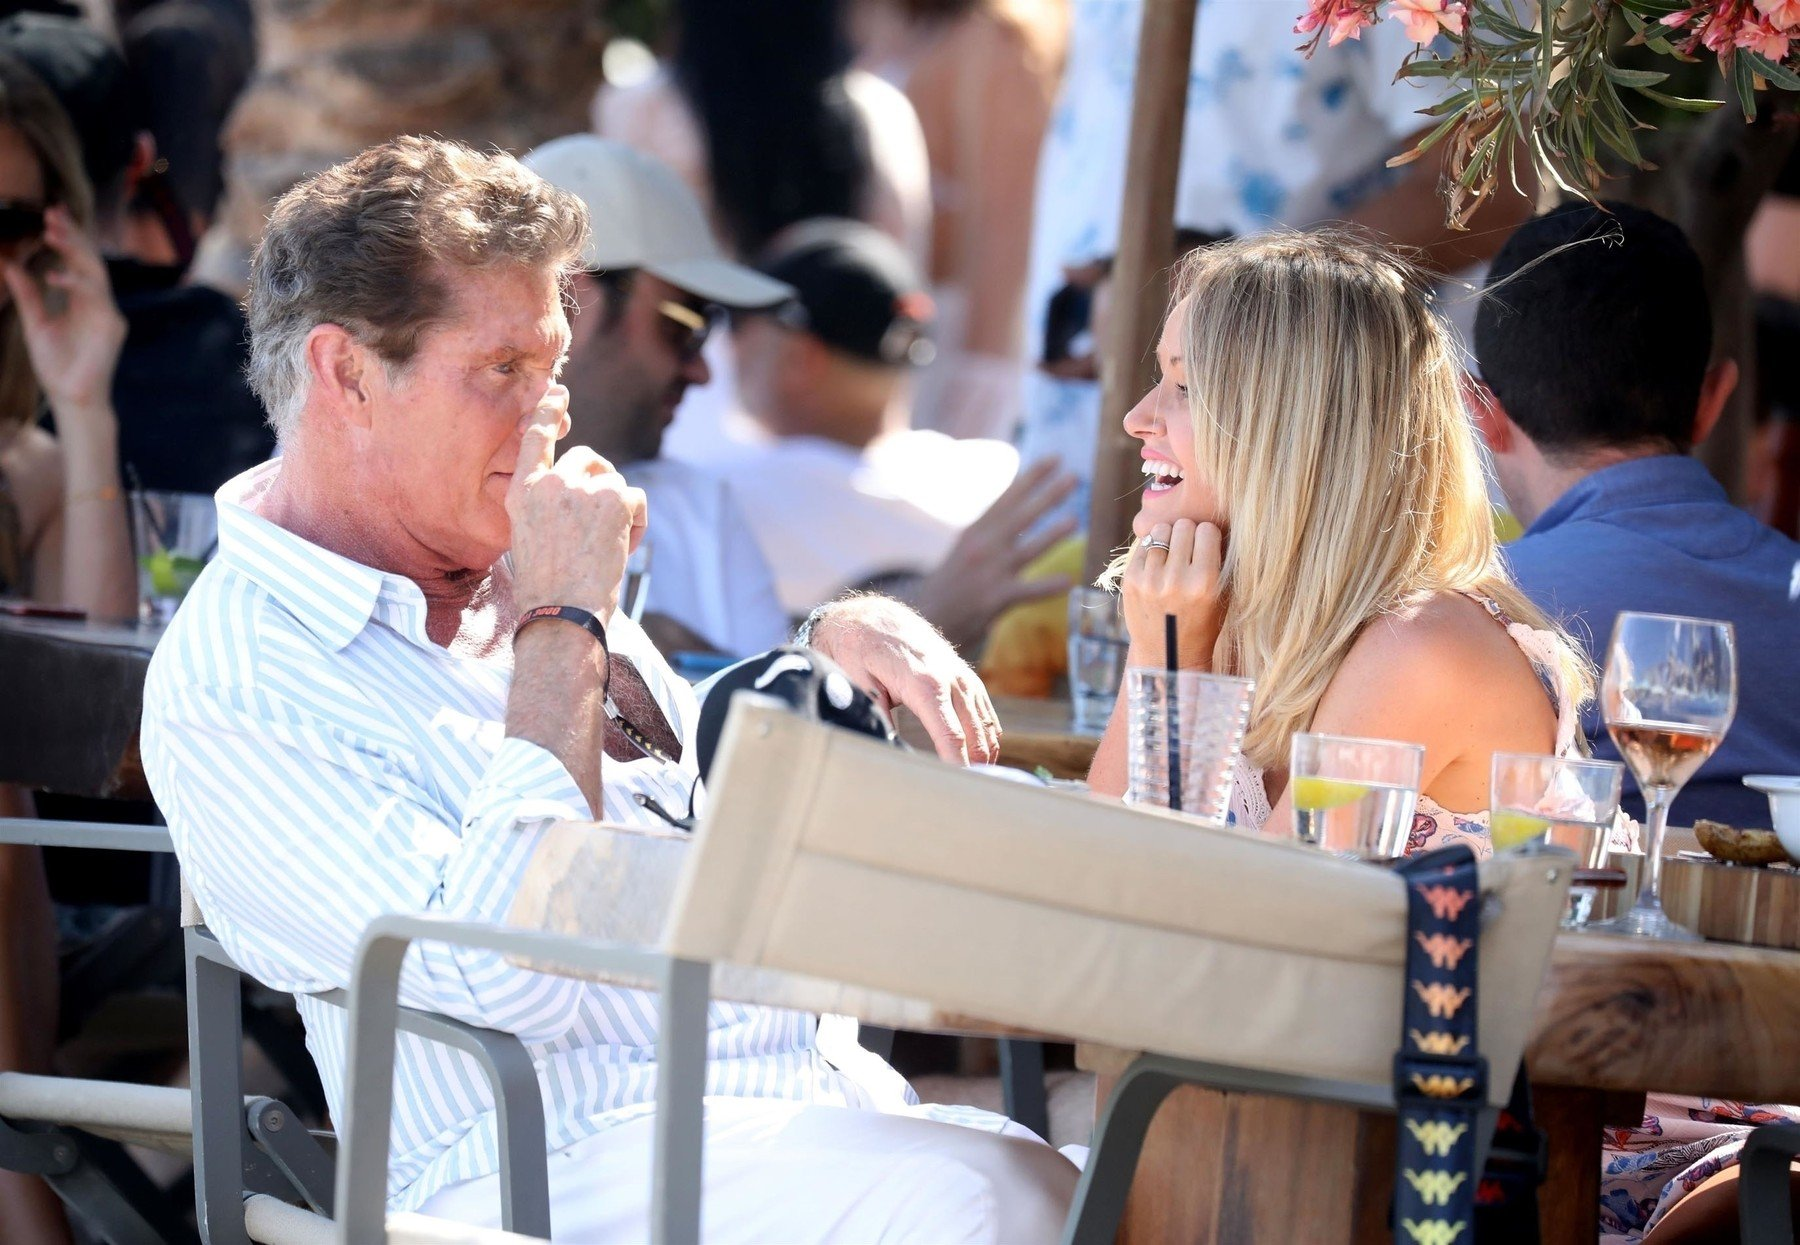 Mykonos, GREECE  - *EXCLUSIVE*  - *WEB MUST CALL FOR PRICING*  Former Knight Rider and Baywatch star David Hasselhoff and wife Hailey Roberts enjoy a romantic meal at Nammos on their Greek holiday in Mykonos.  The couple showed a public display of affection as they enjoyed a kiss at the dining table before walking hand in hand on the beach together.   Hailey wore a sexy floral little number and David was dressed all in white looking cool by donning his sunglasses.   *PICTURES TAKEN ON THE 08/06/19*  *UK Clients - Pictures Containing Children Please Pixelate Face Prior To Publication*, Image: 445705561, License: Rights-managed, Restrictions: RIGHTS:  UNITED STATES, UNITED KINGDOM, AUSTRALIA, MEXICO, CANADA, JAPAN, CHINA, KOREA, DENMARK, RUSSIA, UKRAINE, ESTONIA, LITHUANIA, NORWAY, POLAND, SWEDEN, ANGOLA, BOTSWANA, KENYA, LESOTHO, MALAWI, MAURITIUS, MOZAMBIQUE, NAMIBIA, NIGERIA, SOUTH AFRICA, ZAMBIA, ZIMBABWE, FINLAND, BULGARIA, HUNGARY, ROMANIA, SERBIA, CZECH REPUBLIC, SLOVAKIA, BELARUS, ICELAND, IRELAND, ISRAEL, LATVIA, MOLDOVA, SLOVENIA, SWITZERLAND, COSTA RICA, CUBA, DOMINICA, DOMINICAN REPUBLIC, EL SALVADOR, GRENADA, GUATEMALA, NICARAGUA, PANAMA, PUERTO RICO, NEW ZEALAND, AUSTRIA, CYPRUS, GREECE, BELGIUM, NETHERLANDS, INDIA, INDONESIA, NORTH KOREA, PHILIPPINES, SOUTH KOREA, THAILAND, SAUDI ARABIA, SINGAPORE, TURKEY, UNITED ARAB EMIRATES, BOSNIA, CROATIA, LUXEMBOURG, BAHAMAS, BARBADOS, BELIZE, HAITI, HONDURAS, JAMAICA, SCOTLAND, MONACO, TURKS AND CAICOS ISLANDS, EGYPT, AZERBAIJAN, MALTA, LIBYA, MYANMAR, FRENCH POLYNESIA, TAIWAN, MOROCCO, CAPE VERDE, IVORY COAST, GHANA, MALDIVES, JORDAN, IRAN, SAINT BARTS, SAINT MARTIN, GUADELOUPE, MONTENEGRO, LEBANON, MALAYSIA, FIJI, UGANDA, CURACAO, CHAD, BANGLADESH, VIETNAM, ETHIOPIA, DJIBOUTI, TUNISIA, Model Release: no, Credit line: Profimedia, Backgrid UK